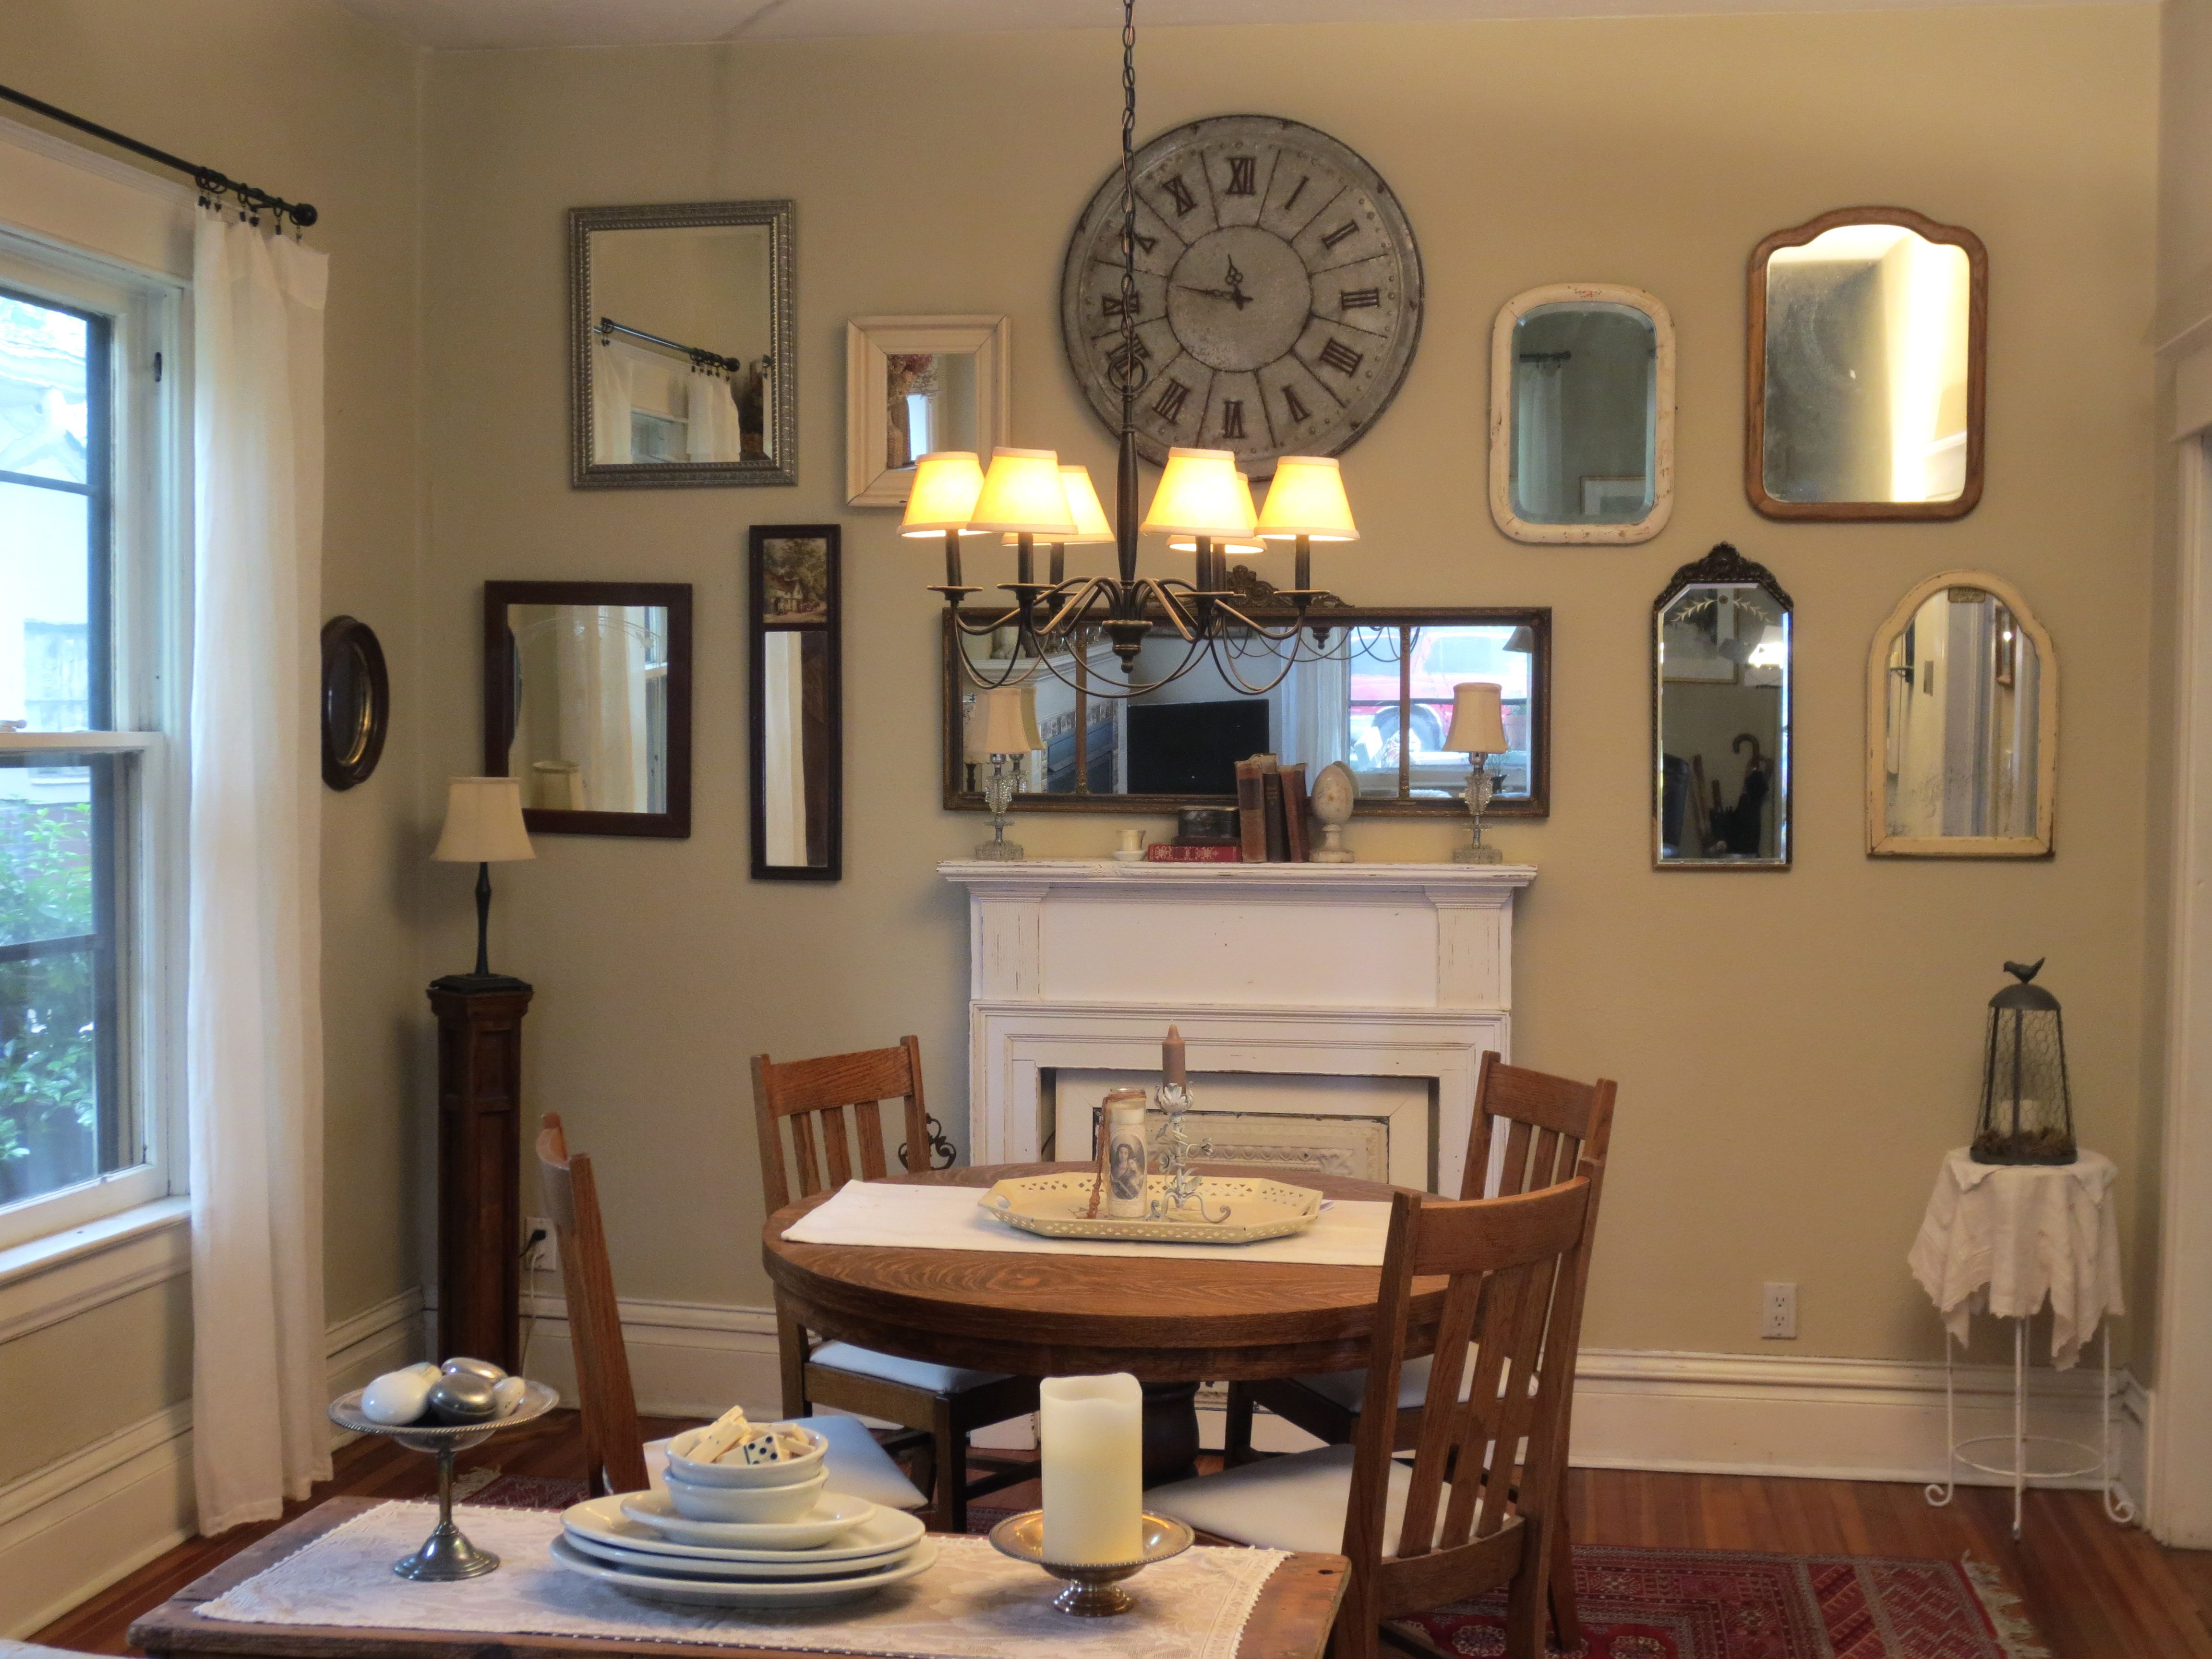 Charming French Country Dining Room With Wall Of Mirrors - Charming french country decor